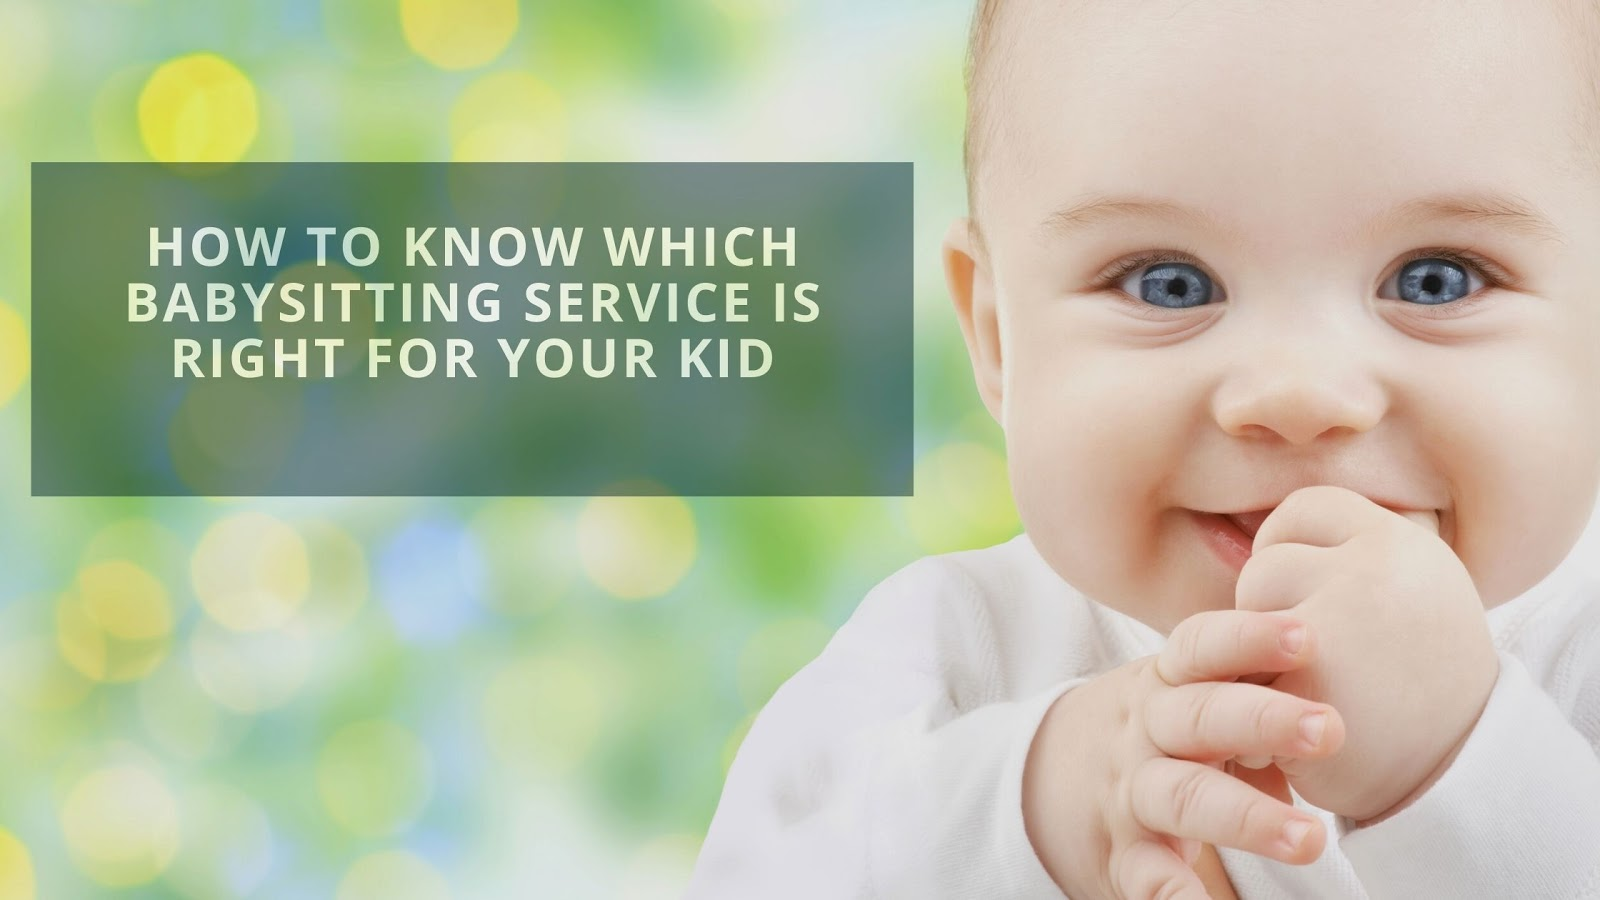 How To Know Which Babysitting Service Is Right For Your Kid